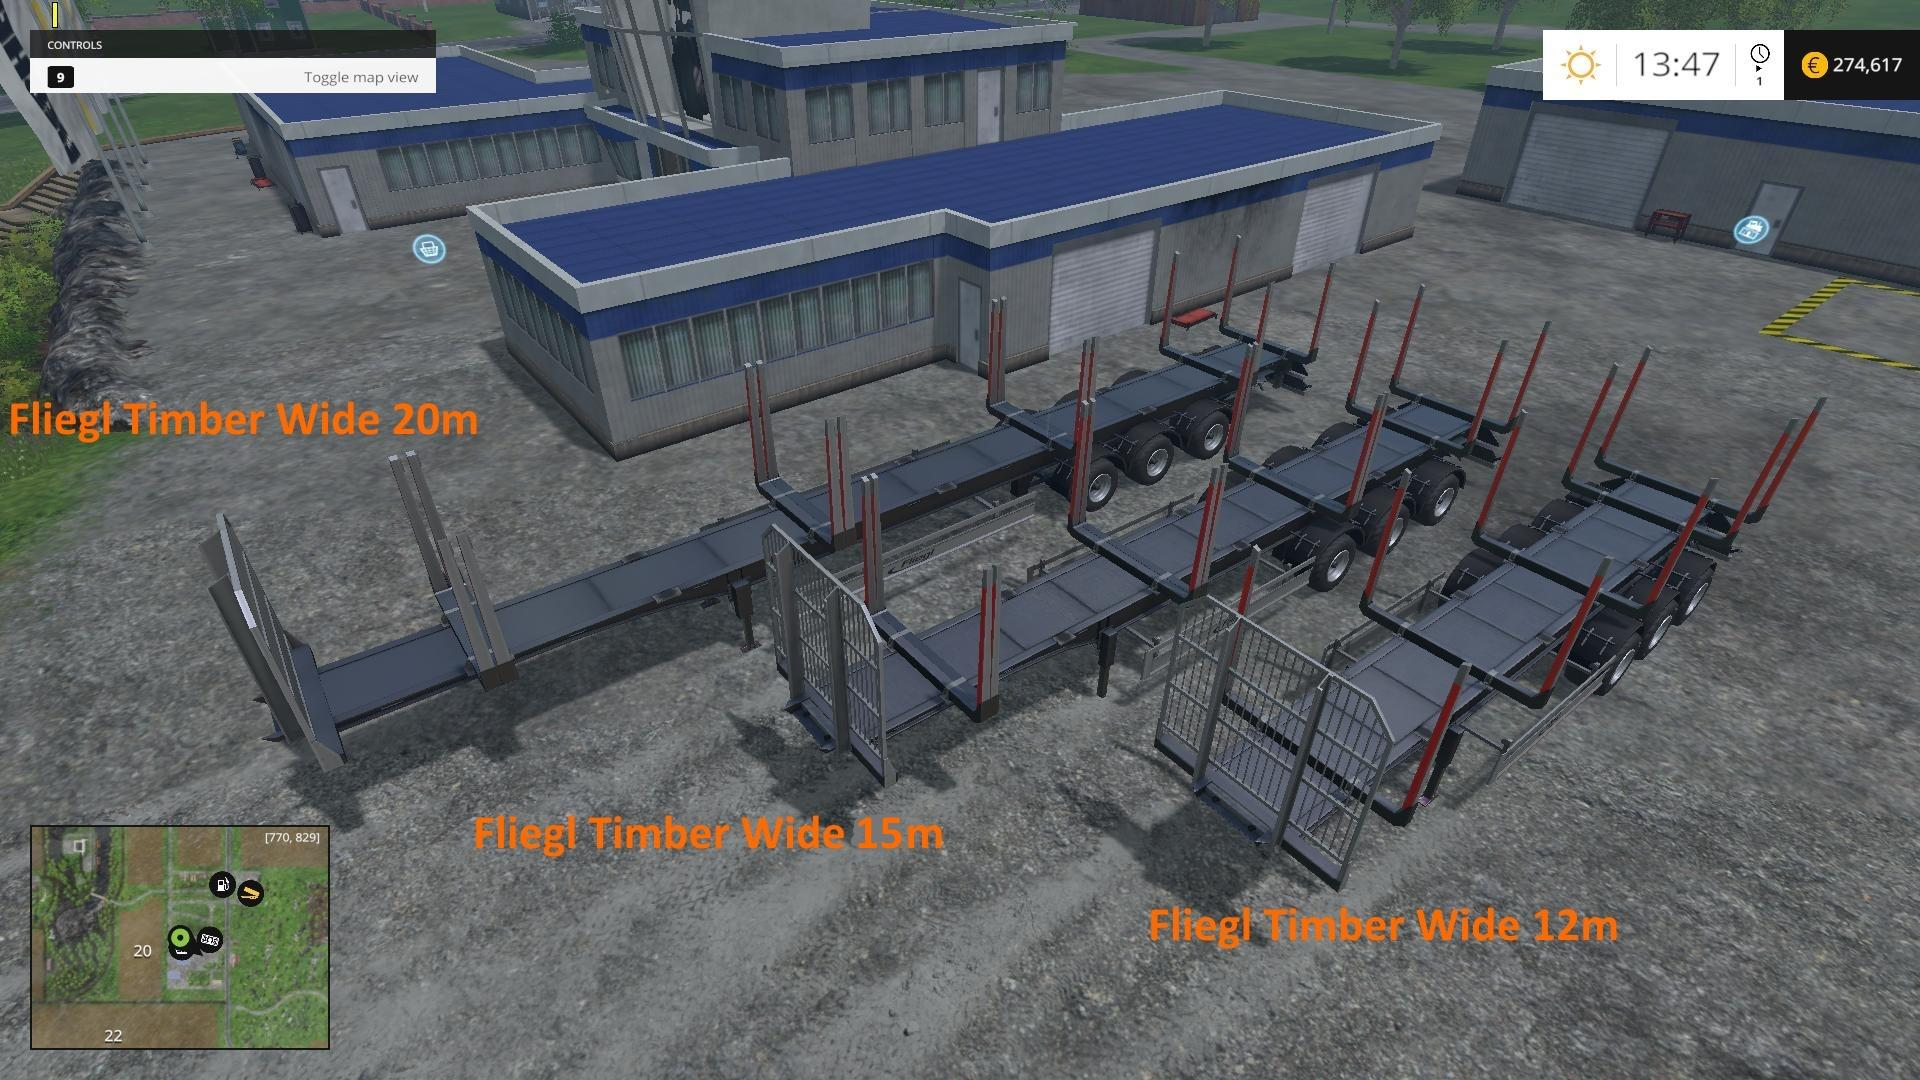 Fliegl Timber Runner Wide With Autoload v1 2 - Modhub us